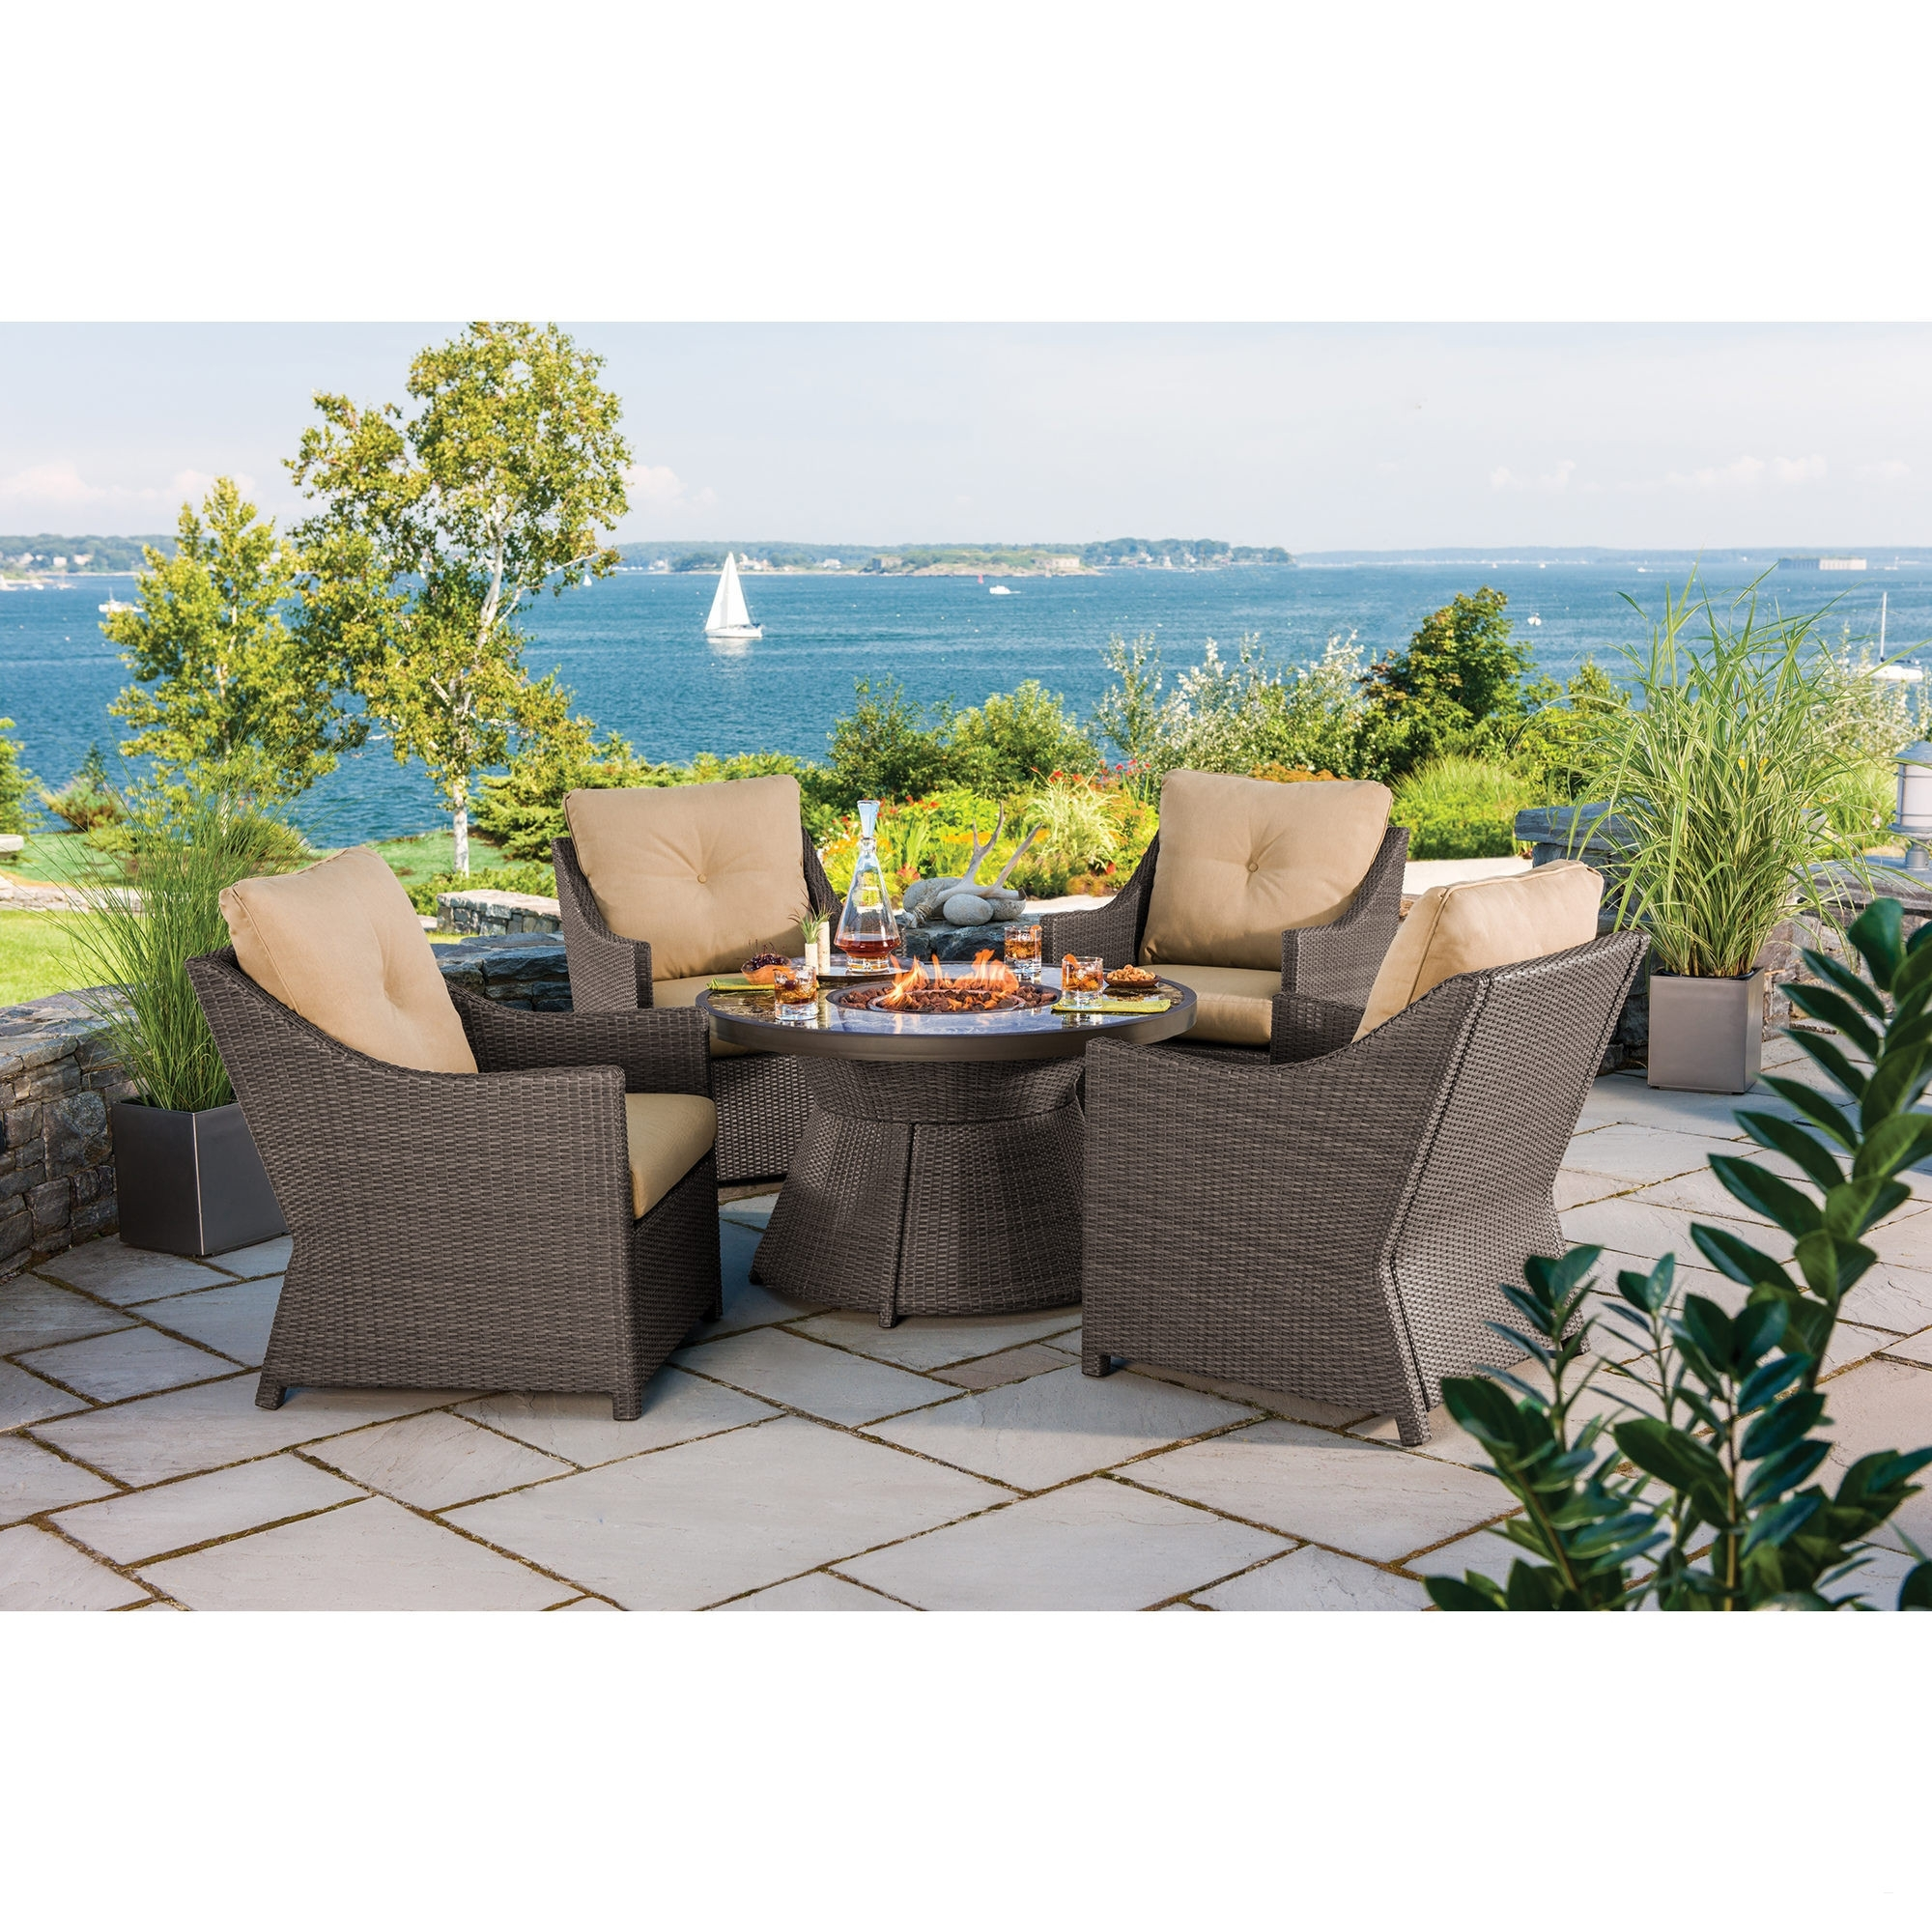 Latest Patio Conversation Sets Under 500 Patio Furniture Walmart Outdoor For Patio Conversation Sets Under $ (View 10 of 20)